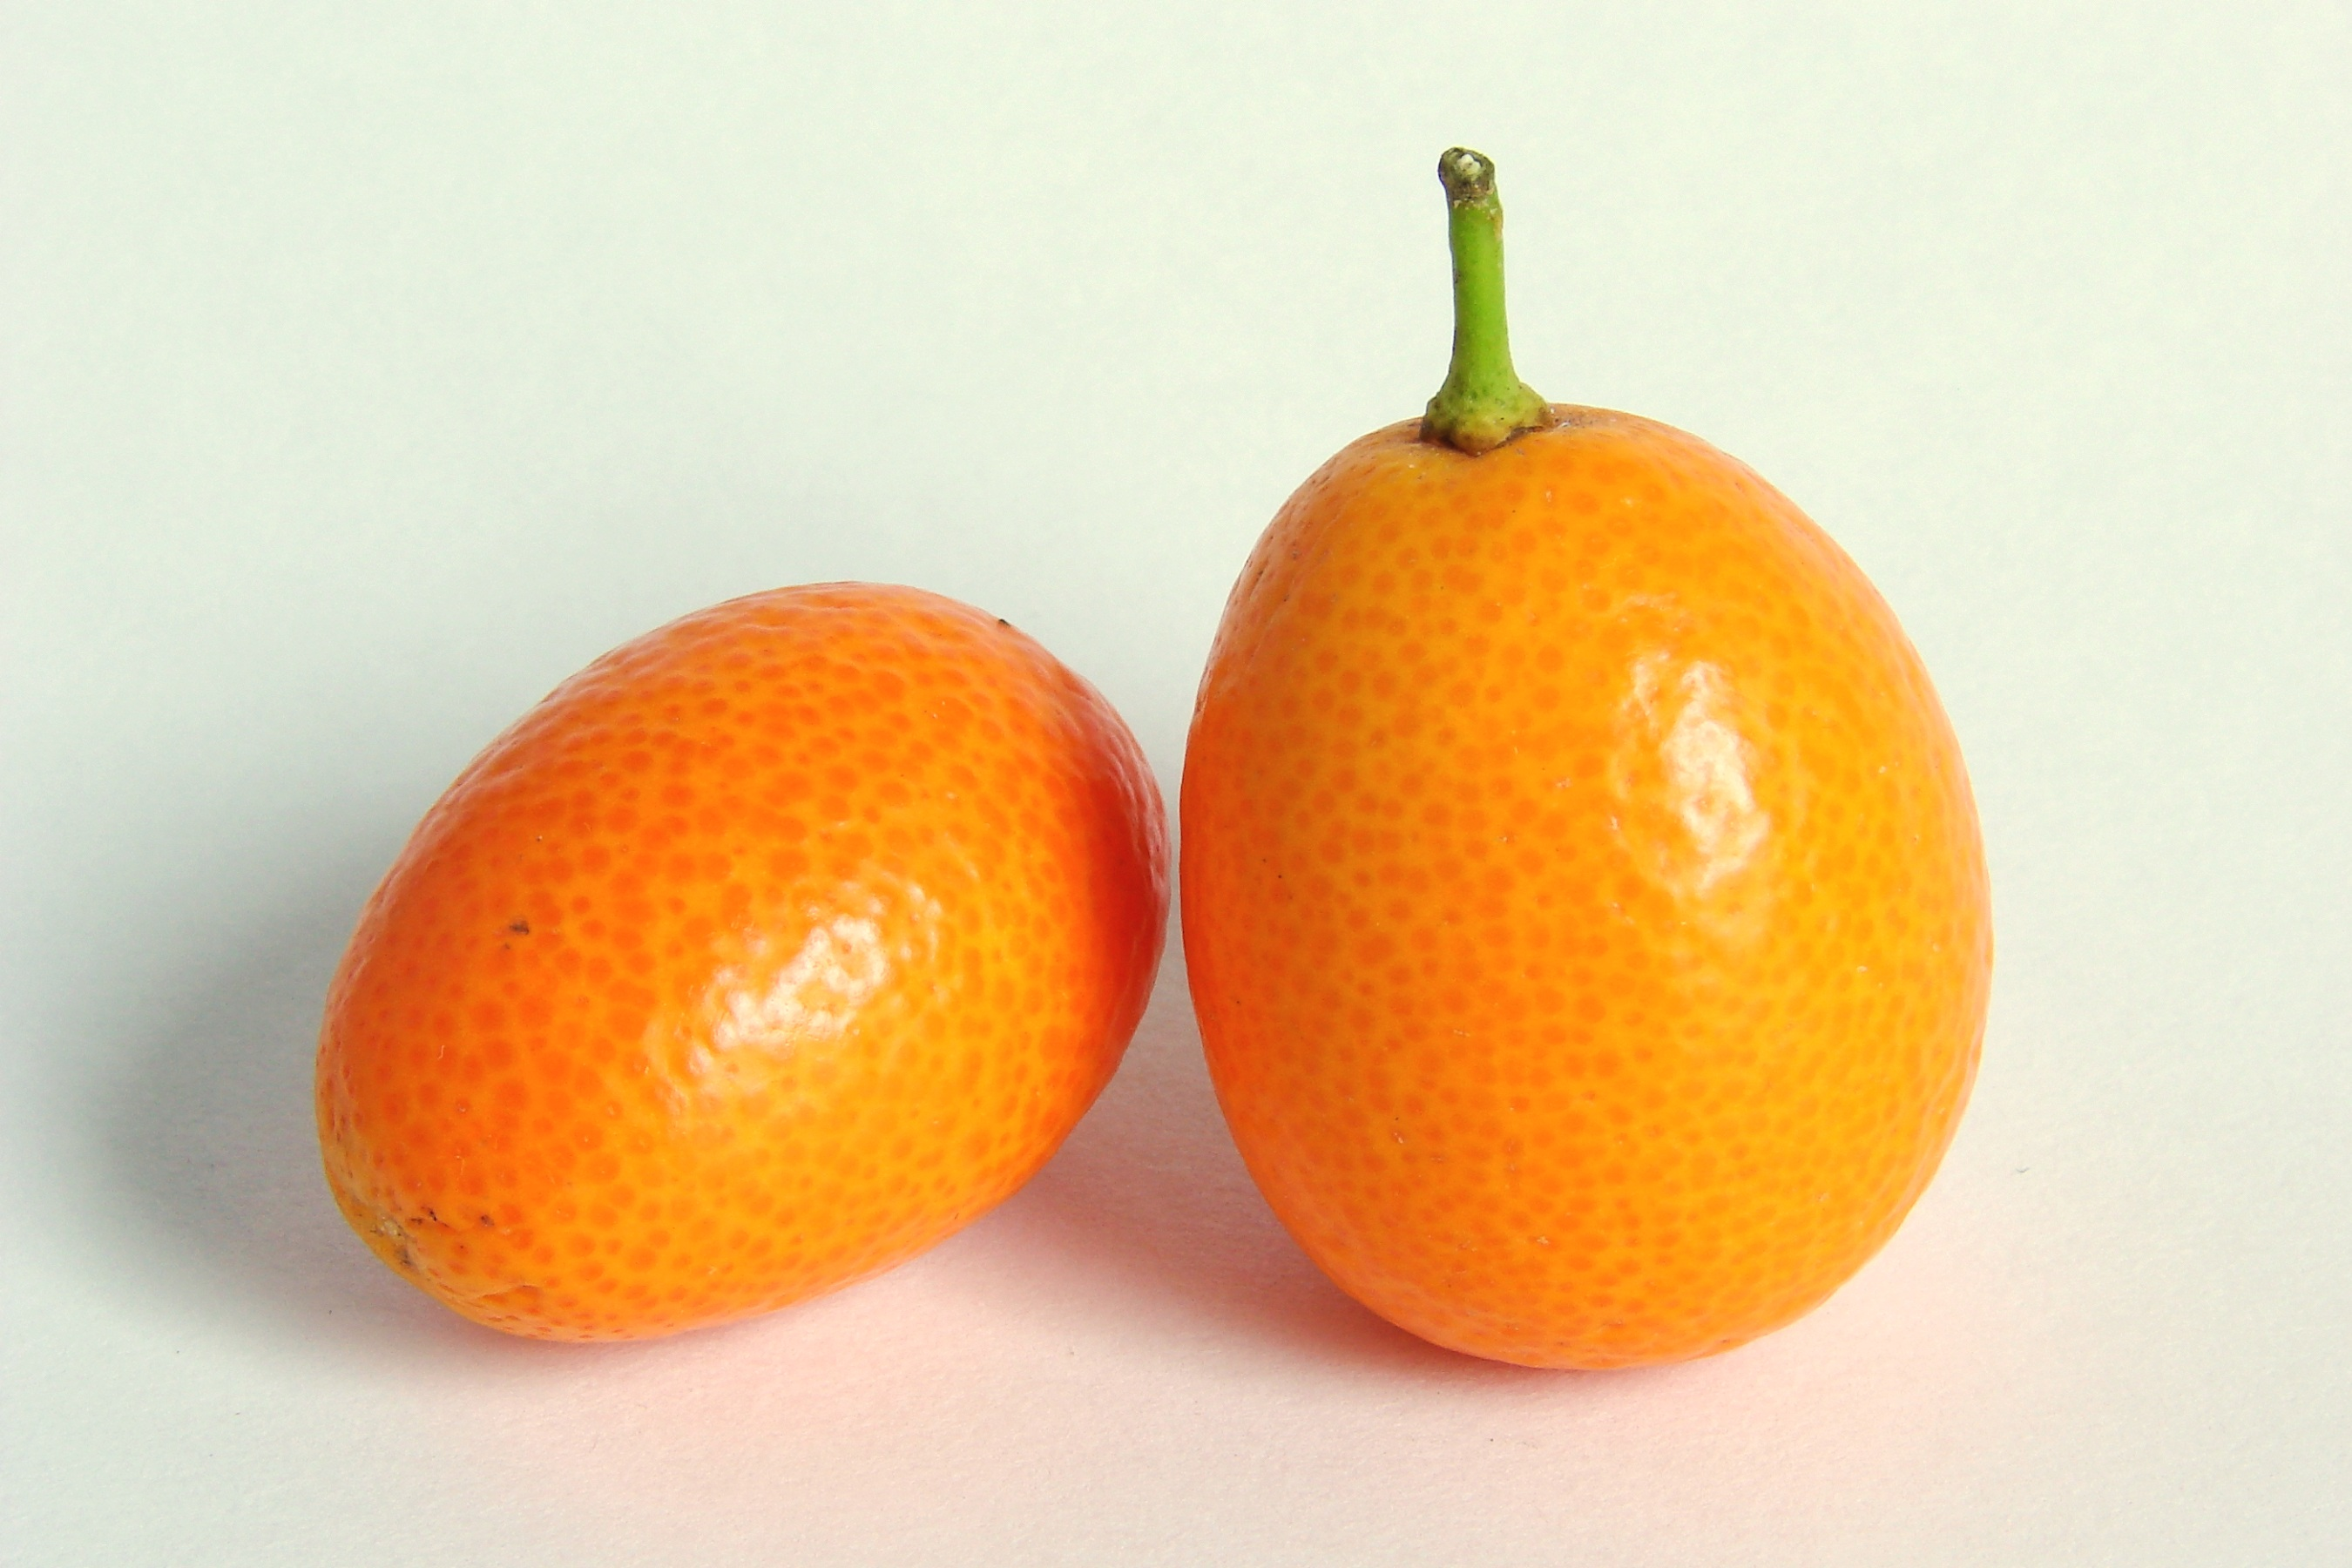 File:Kumquat-0245.jpg - Wikimedia Commons